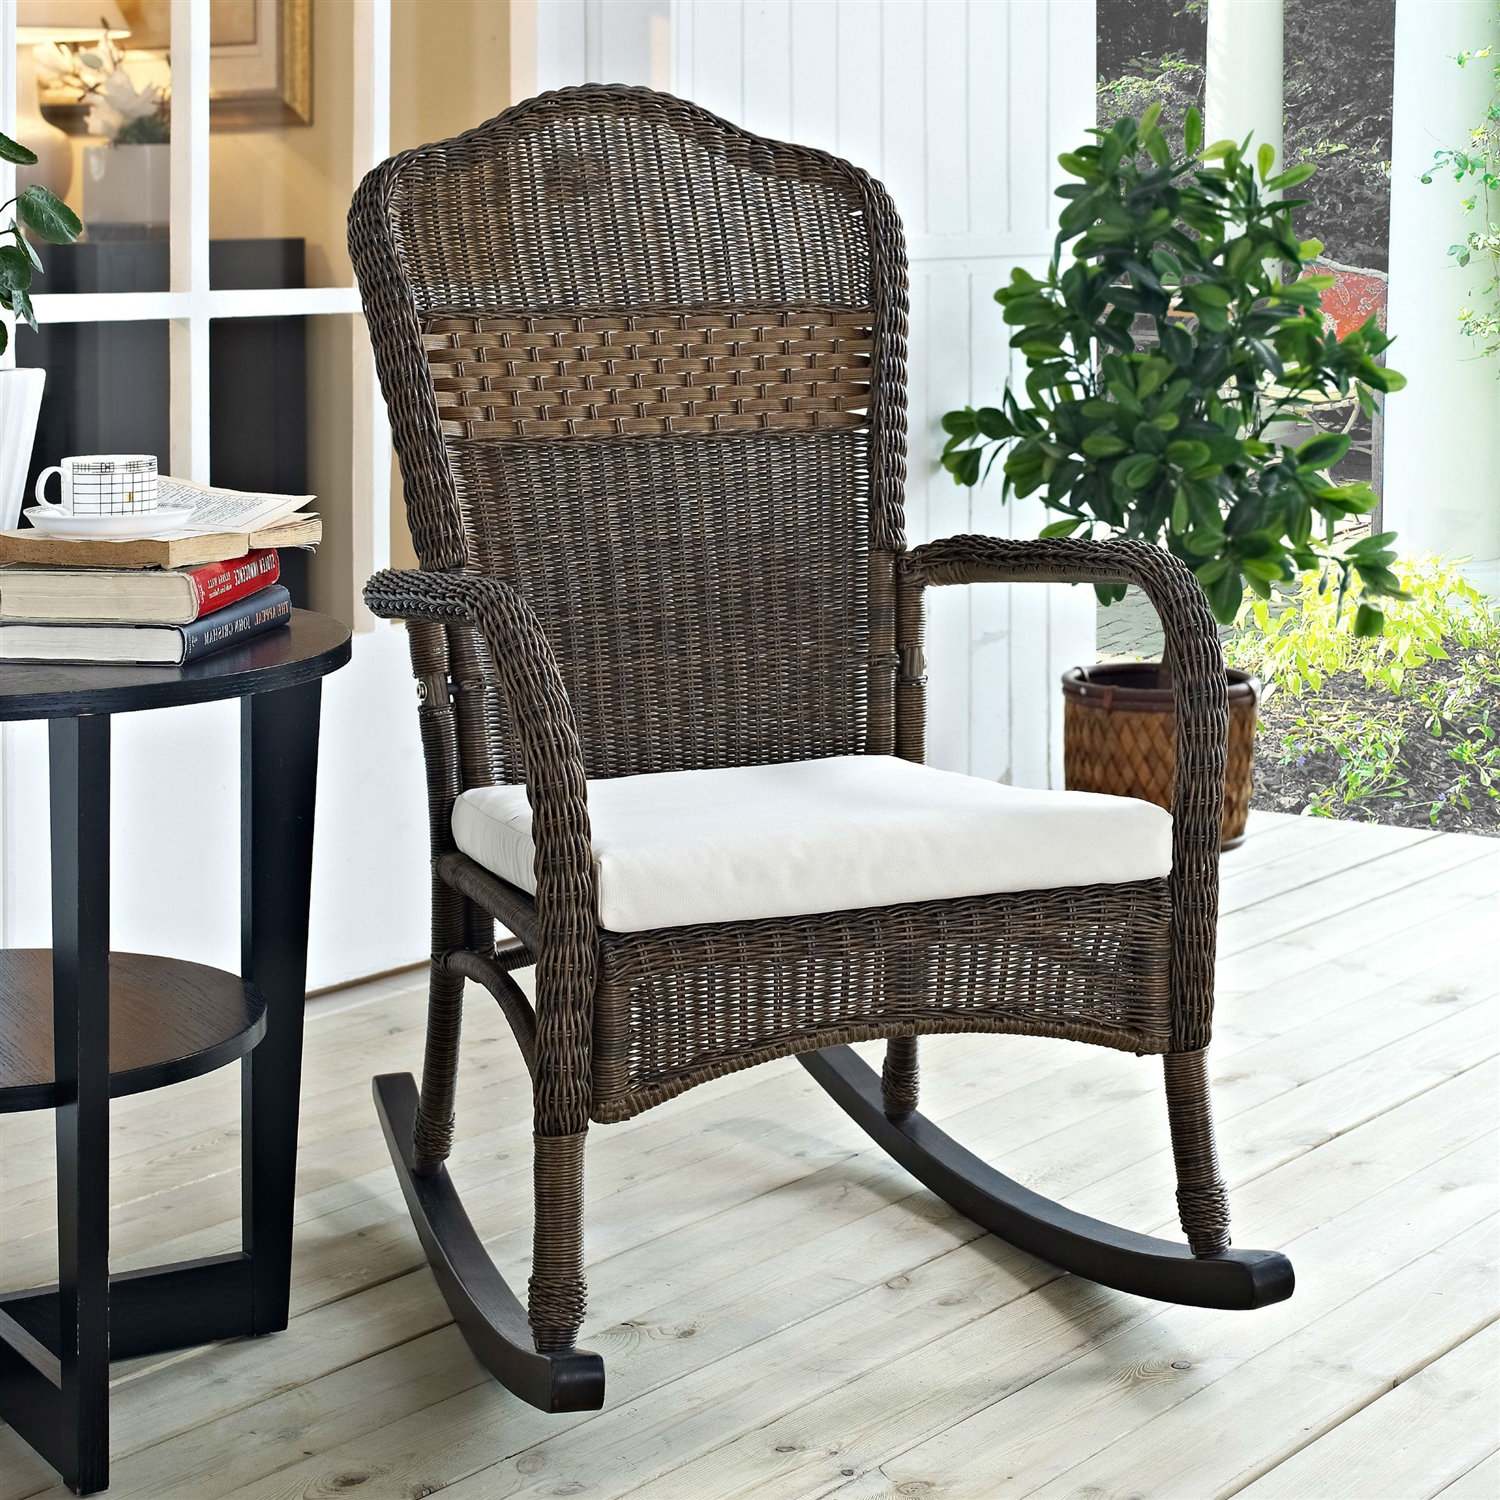 Wicker Rocking Chair Indoor Outdoor Patio Porch Mocha Wicker Rocking Chair With Beige Cushion